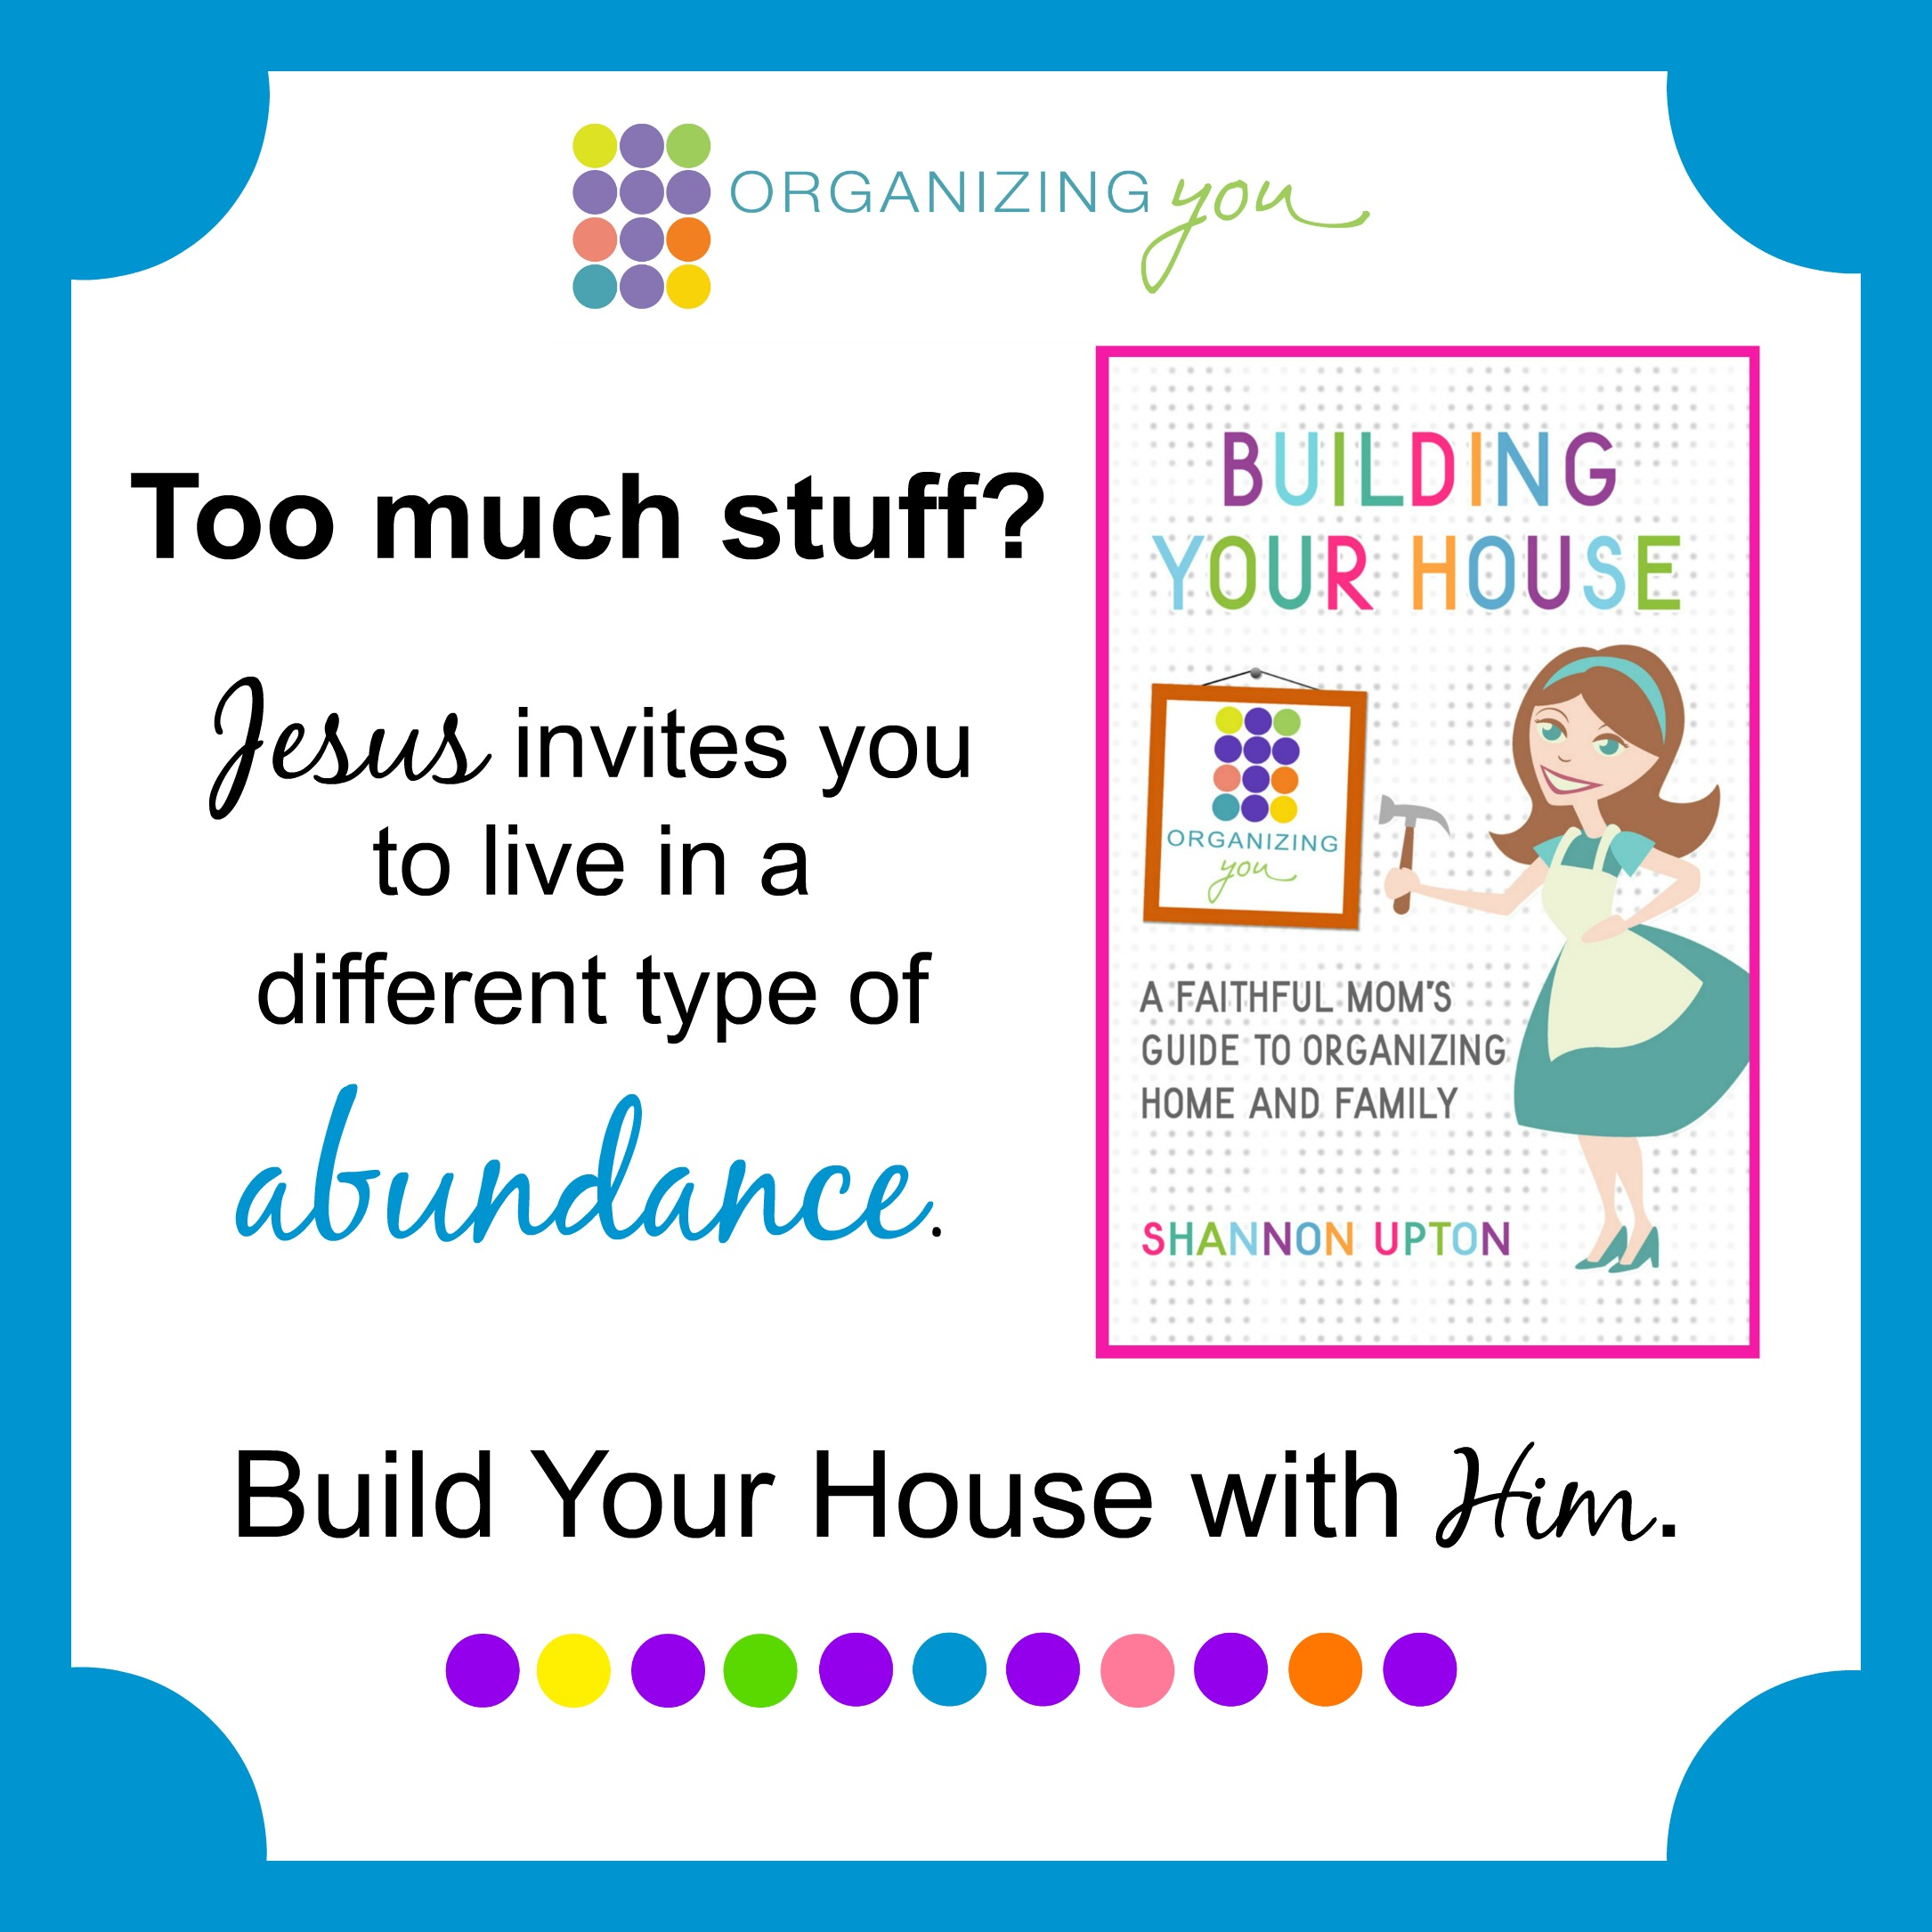 Building-Your-House-ad-1